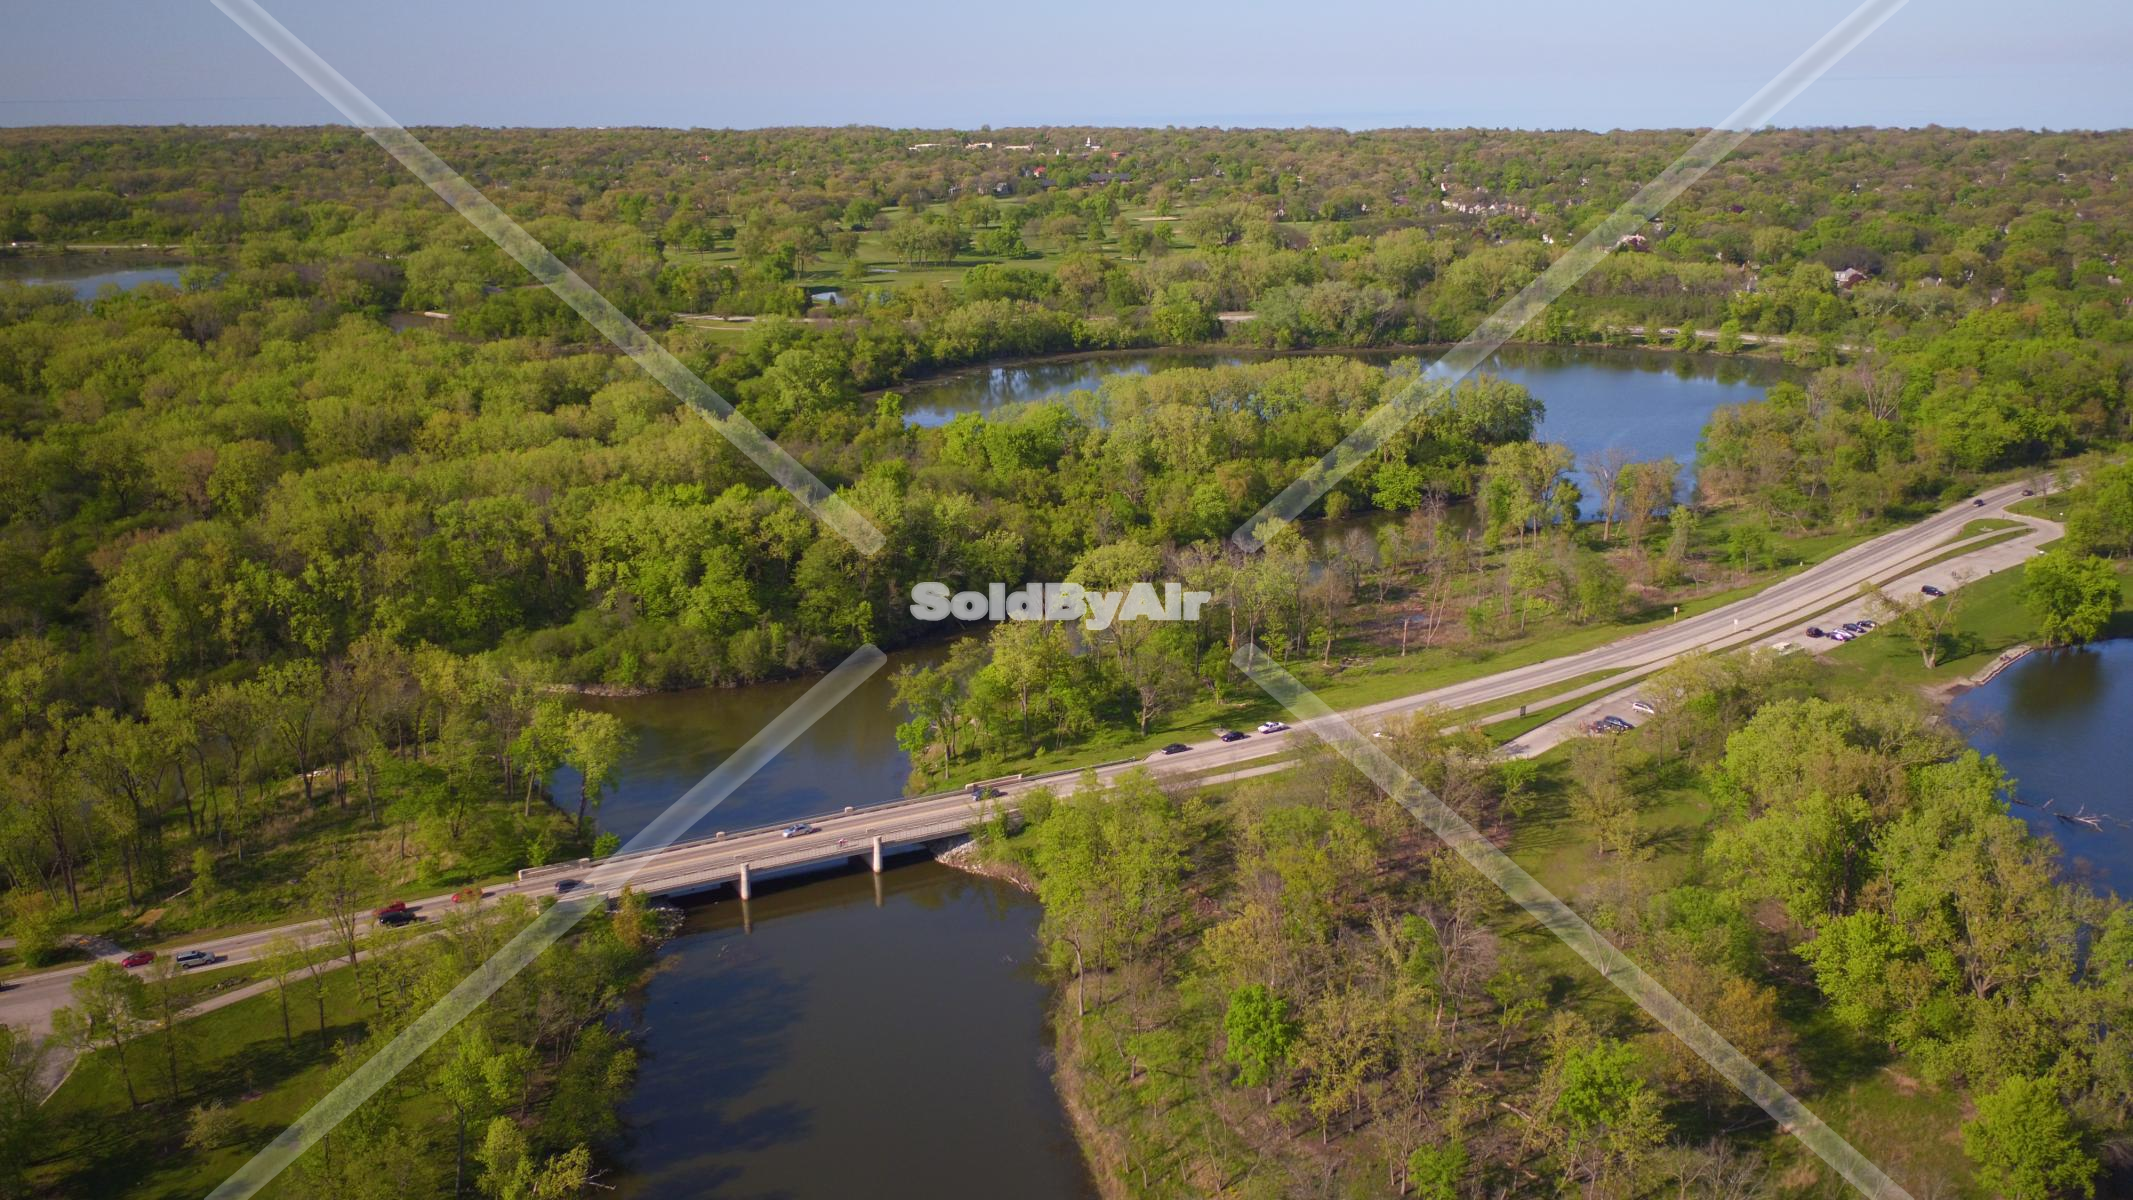 Drone Photo of Skokie Lagoons in Northfield Illinois